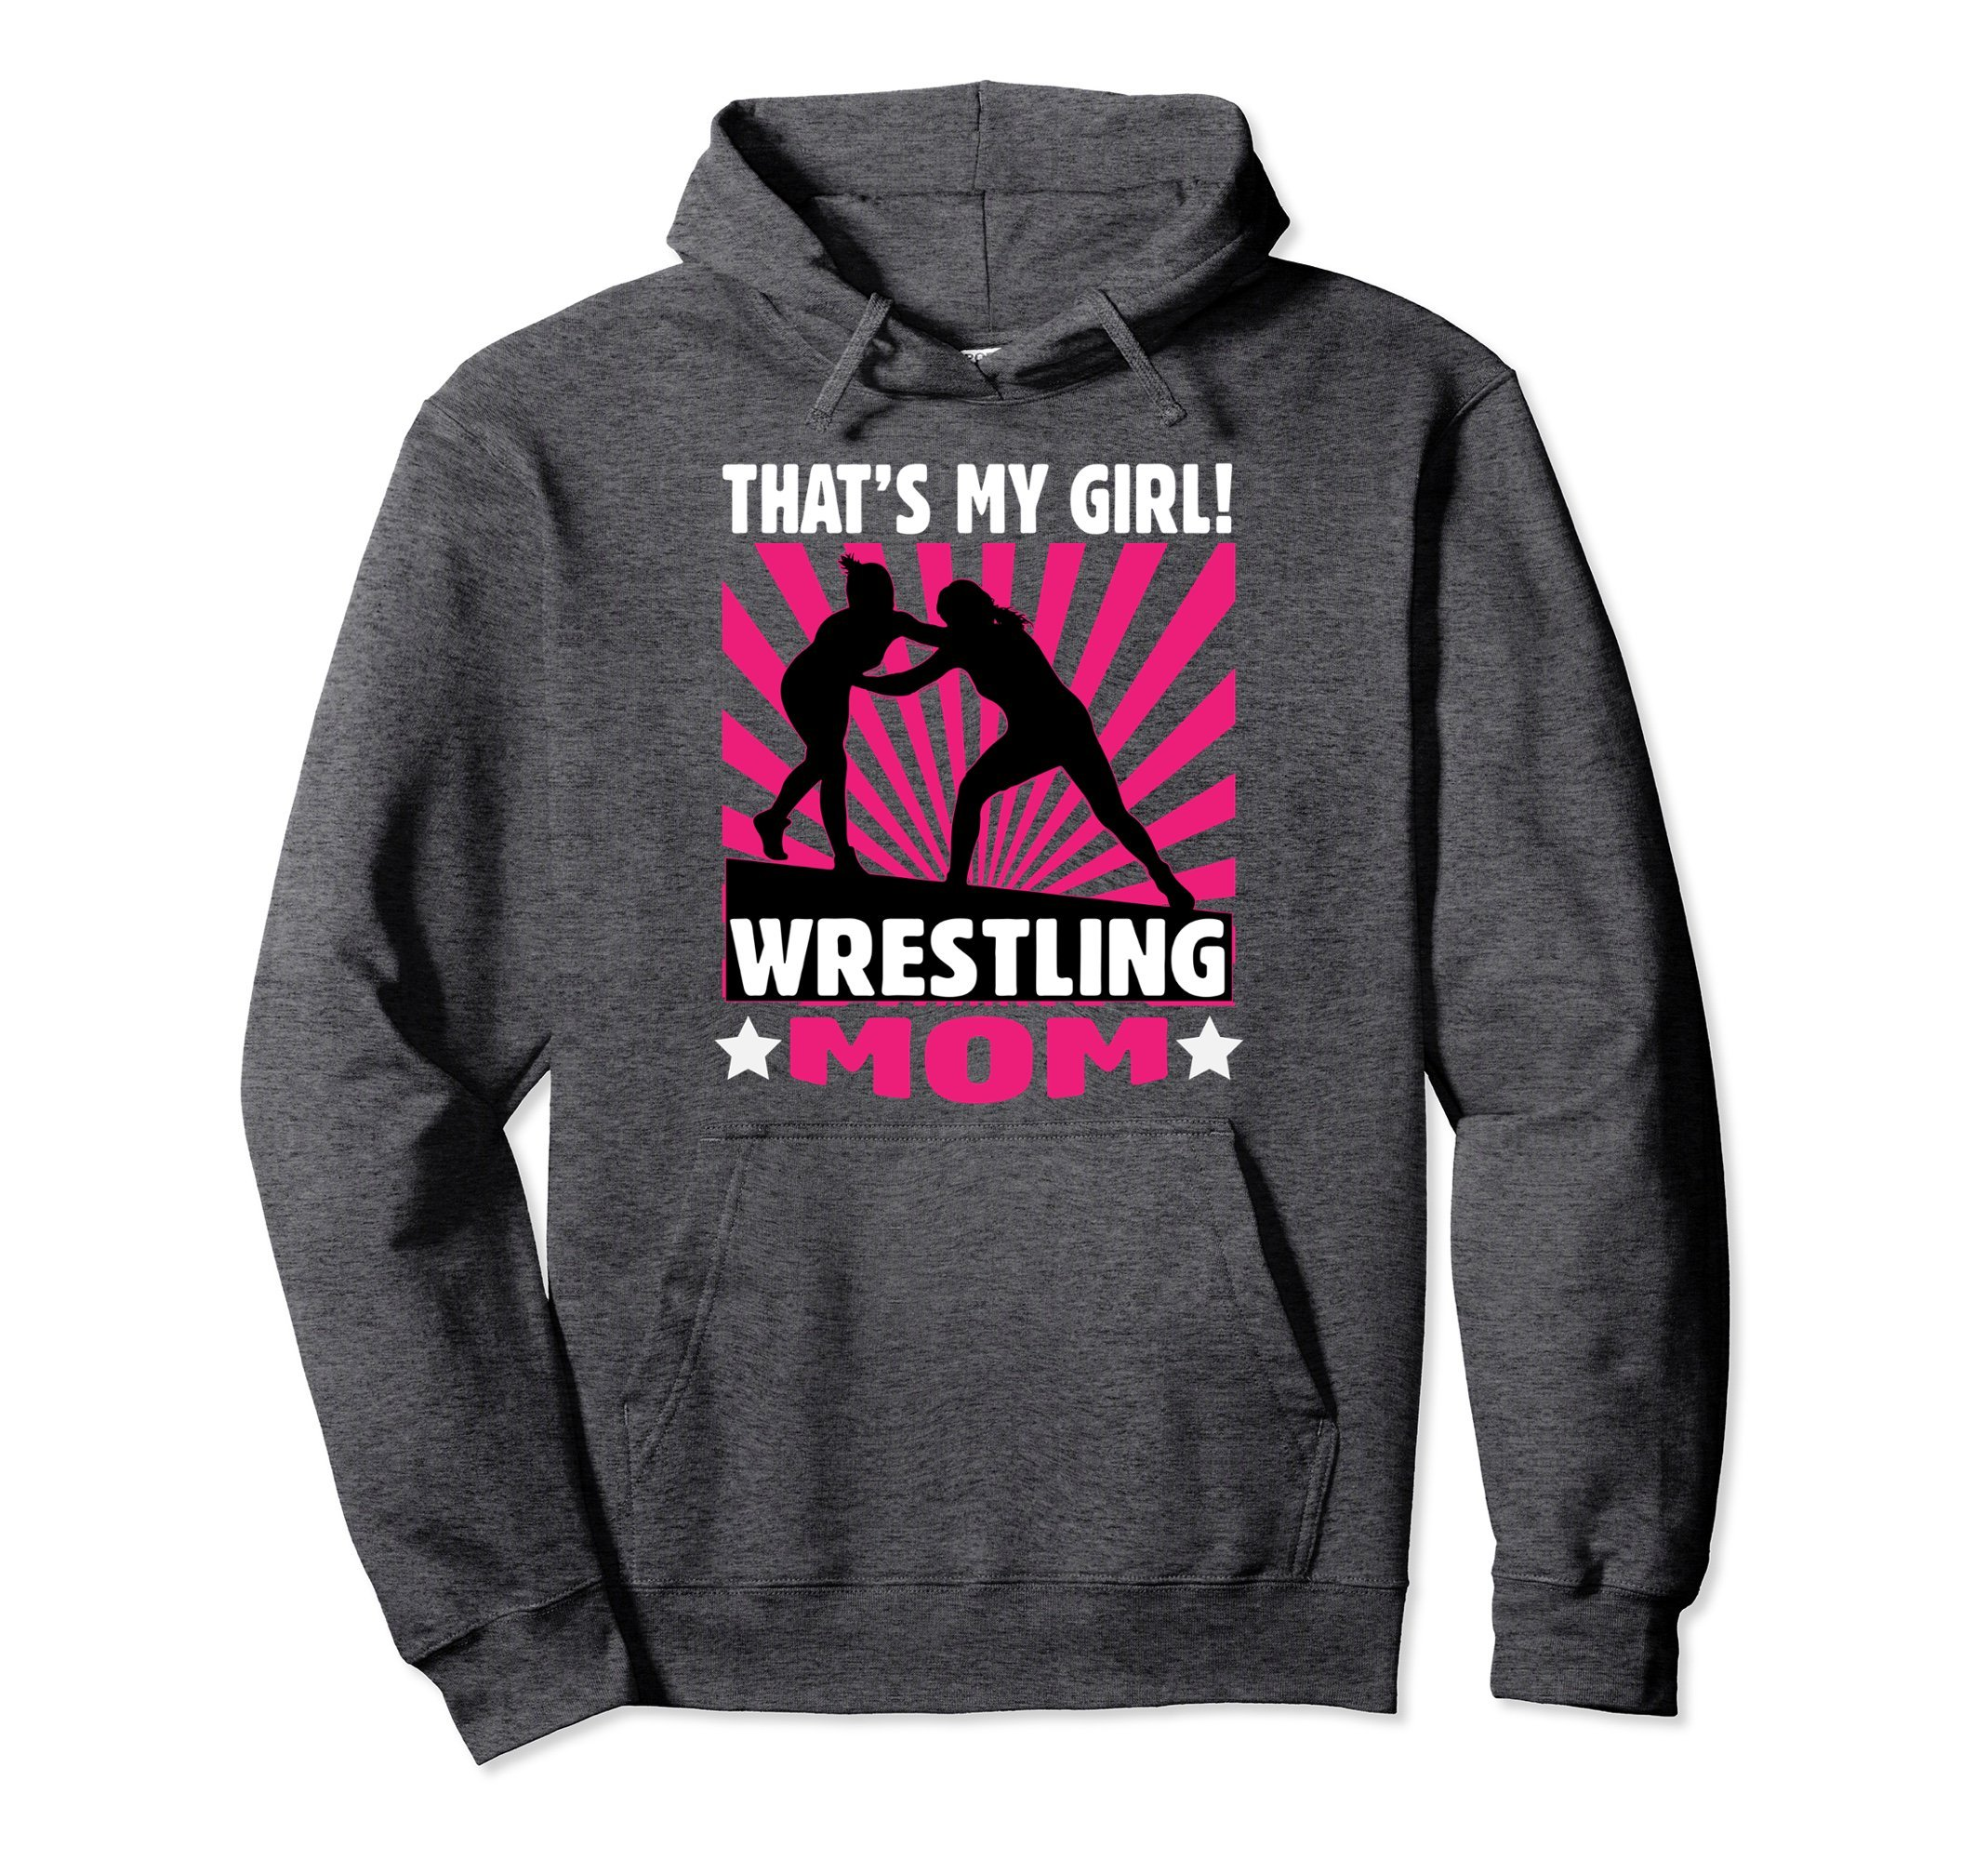 Unisex Wrestling Hoodie - That's My Girl - Wrestling Mom Sweatshirt Large Dark Heather by Wrestling Sweatshirt by Crush Retro